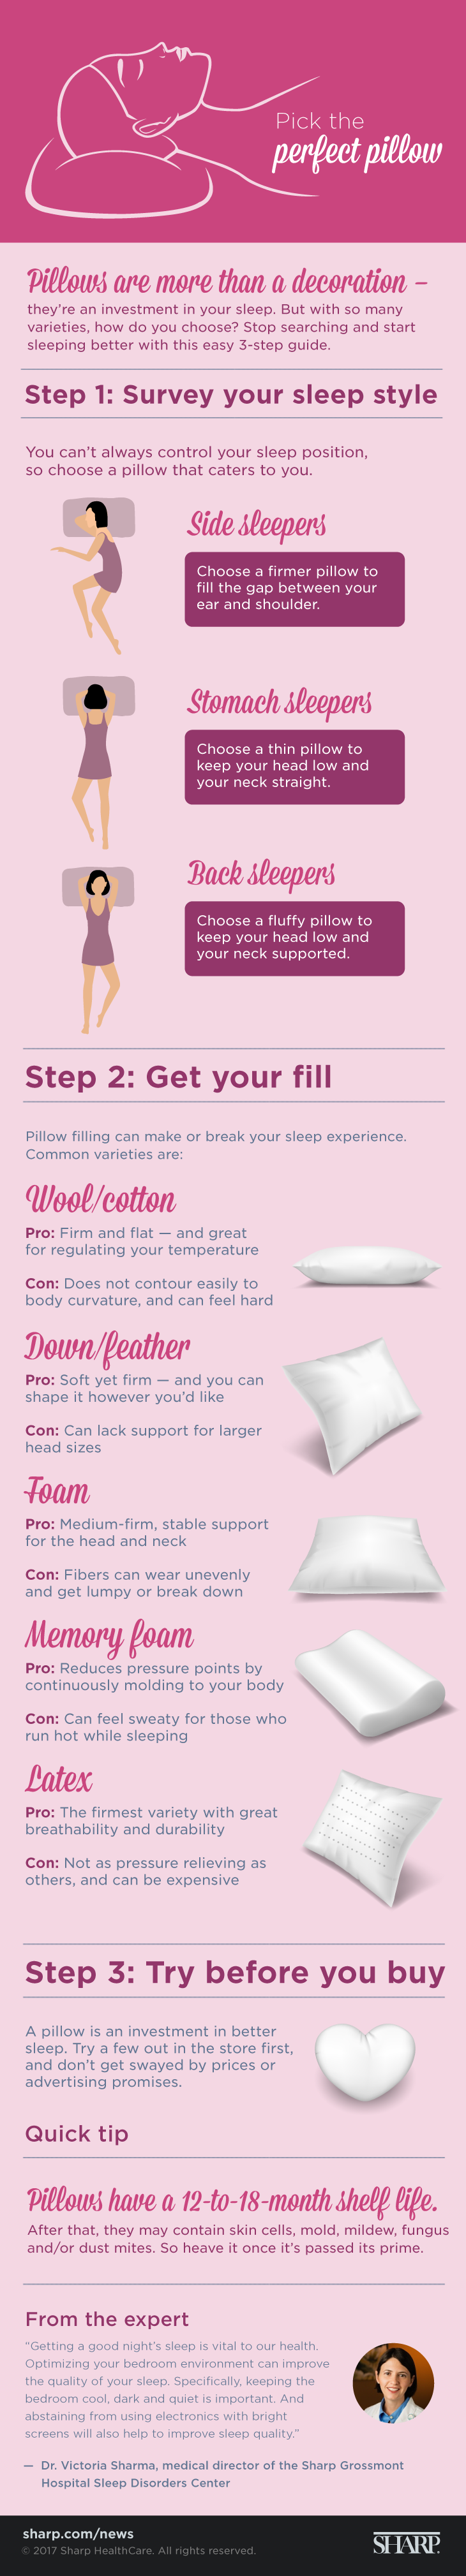 Pick the perfect pillow infographic. Pillows are more than a decoration - they're an investment in your sleep. But with so many varieties, how do you choose? Stop searching and start sleeping better with this easy 3-step guide. Step 1: Survey your sleep style. You can't always control your sleep position, so choose a pillow that caters to you. Side sleepers: Choose a firmer pillow to fill the gap between your ear and shoulder. Stomach sleepers: Choose a thin pillow to keep your head low and your neck straight. Back sleepers: Choose a fluffy pillow to keep your head low and your neck supported. Step 2: Get your fill. Pillow filling can make or break your sleep experience. Common varieties are: Wool/cotton: Pro - firm and flat - and great for regulating your temperature. Con - Does not contour easily to body curvature, and can feel hard. Down/feather: Pro - soft yet firm - and you can shape it however you'd like. Con - can lack support for larger head sizes. Foam: Pro - Medium-firm, stable support for the head and neck. Con - fibers can wear unevenly and get lumpy or break down. Memory foam: Pro - reduces pressure points by continuously molding to your body. Con - can feel sweaty for those who run hot while sleeping. Latex: Pro - The firmest variety with great breathability and durability. Con - not as pressure relieving as others, and can be expensive. Step 3: Try before you buy. A pillow in an investment in better sleep. Try a few out in the store first, and don't get swayed by prices or advertising promises. Quick Tip: Pillows have a 12-t0-18-month shelf life. After that, they may contain skin cells, mold, mildew, fungus and/or dust mites. So heave it once it's passed its prime. From the expert: